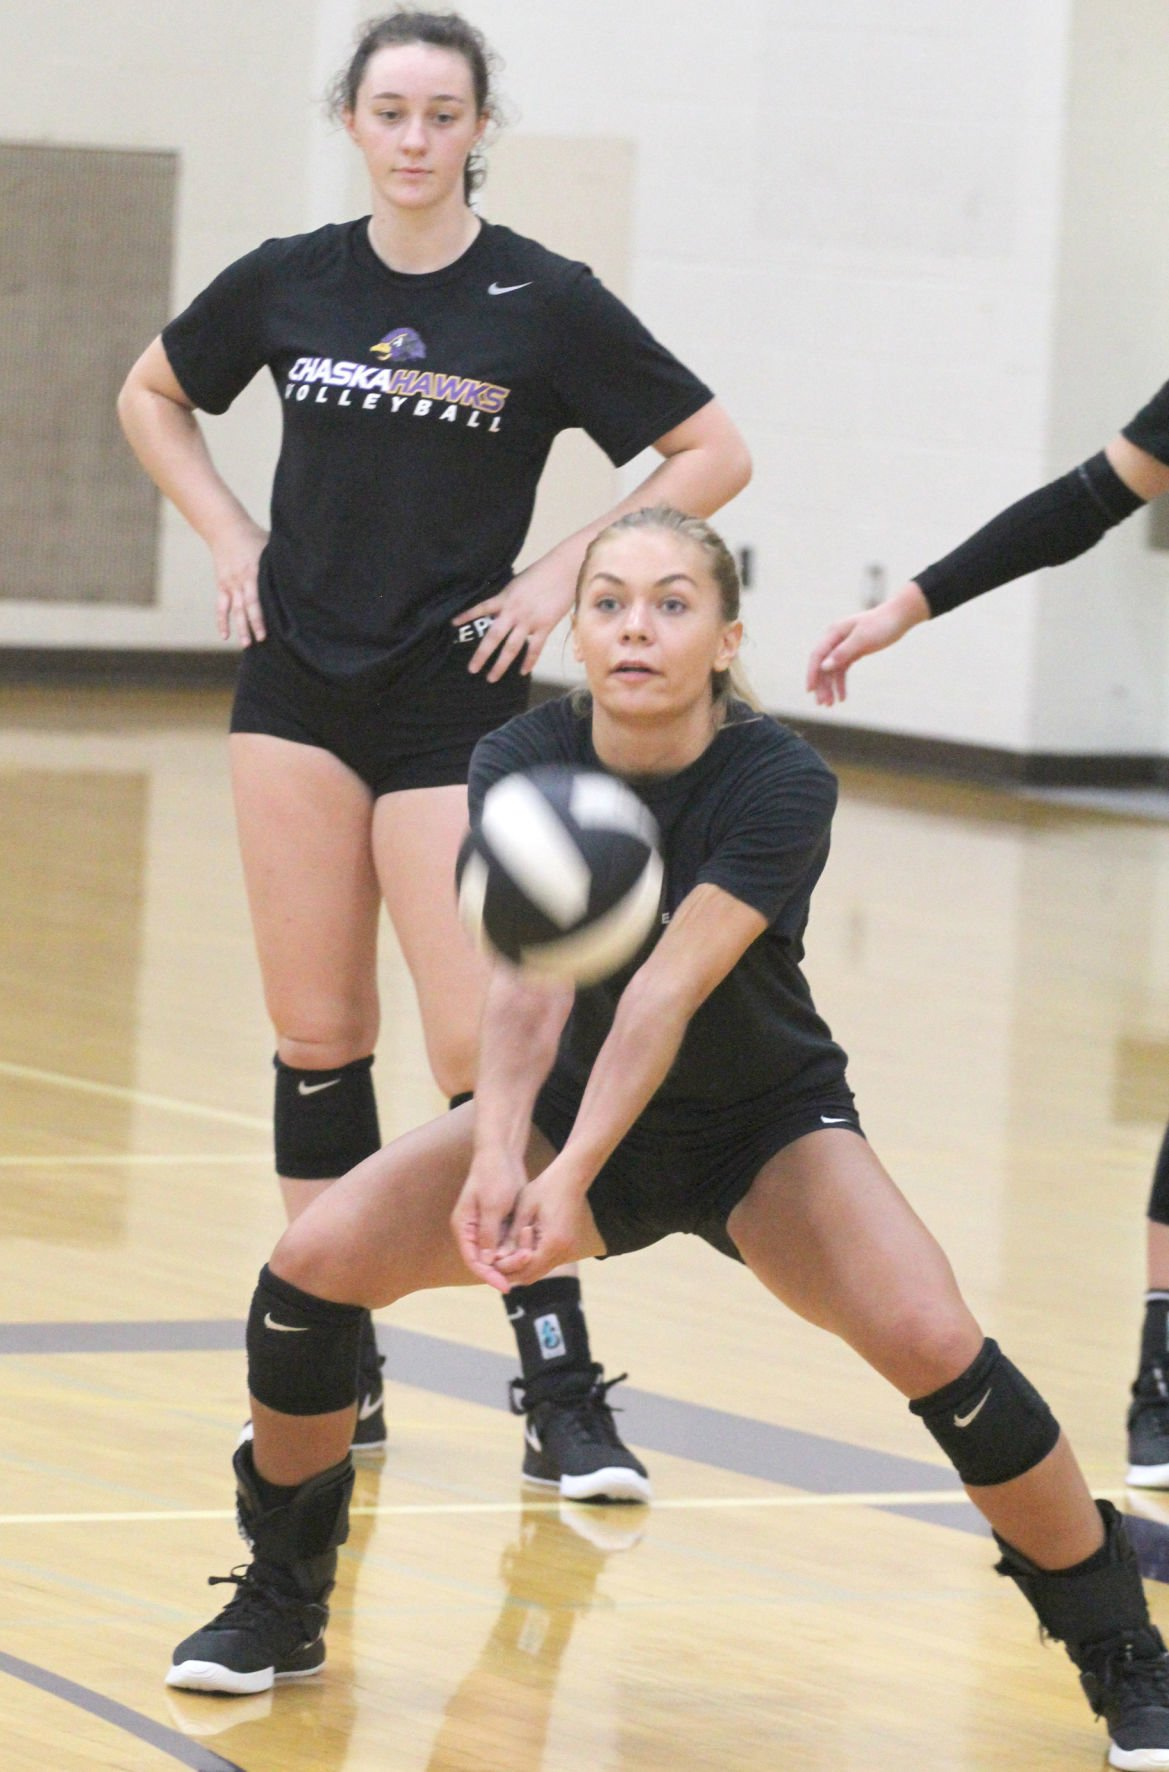 Chaska Volleyball - Doolittle